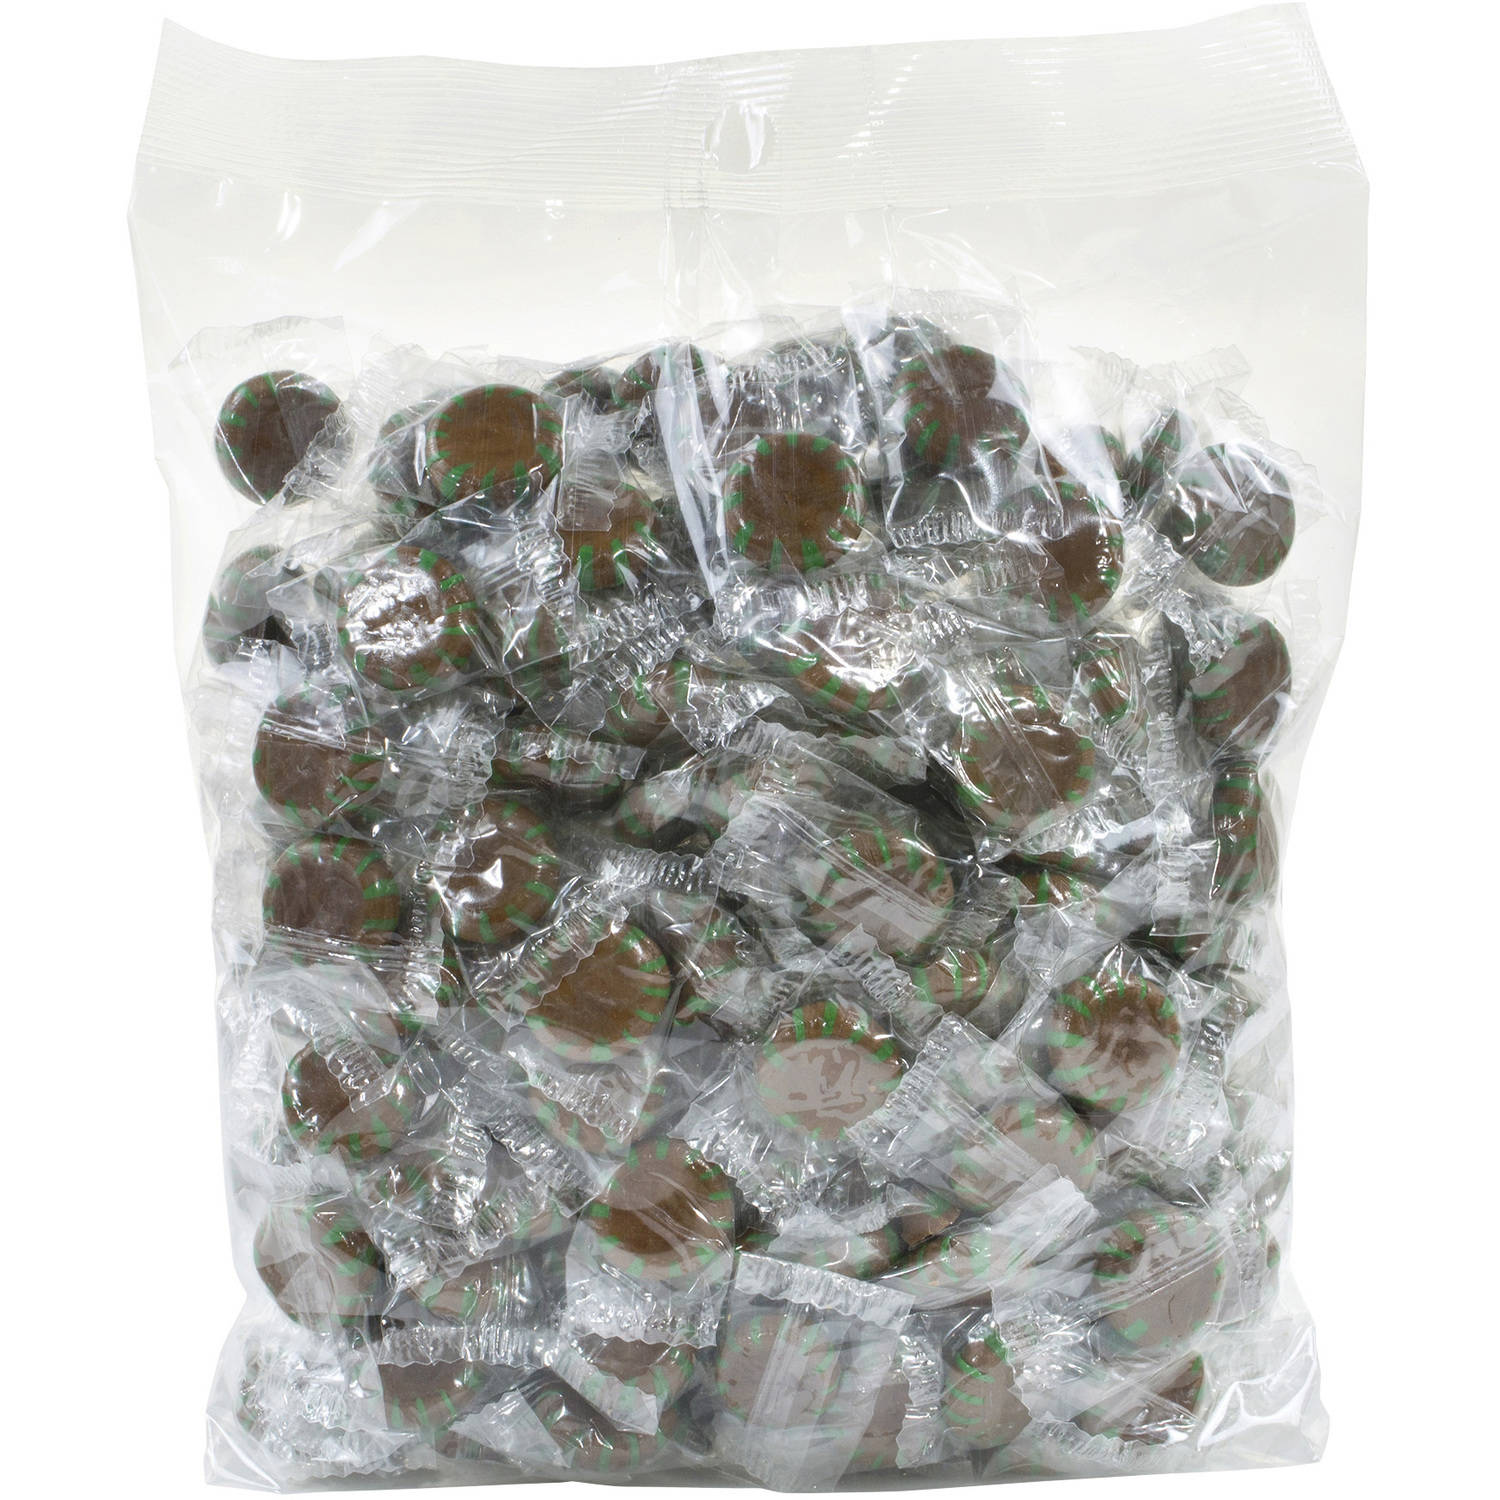 Quality Candy Chocolate Starlight Mints, 5 lbs